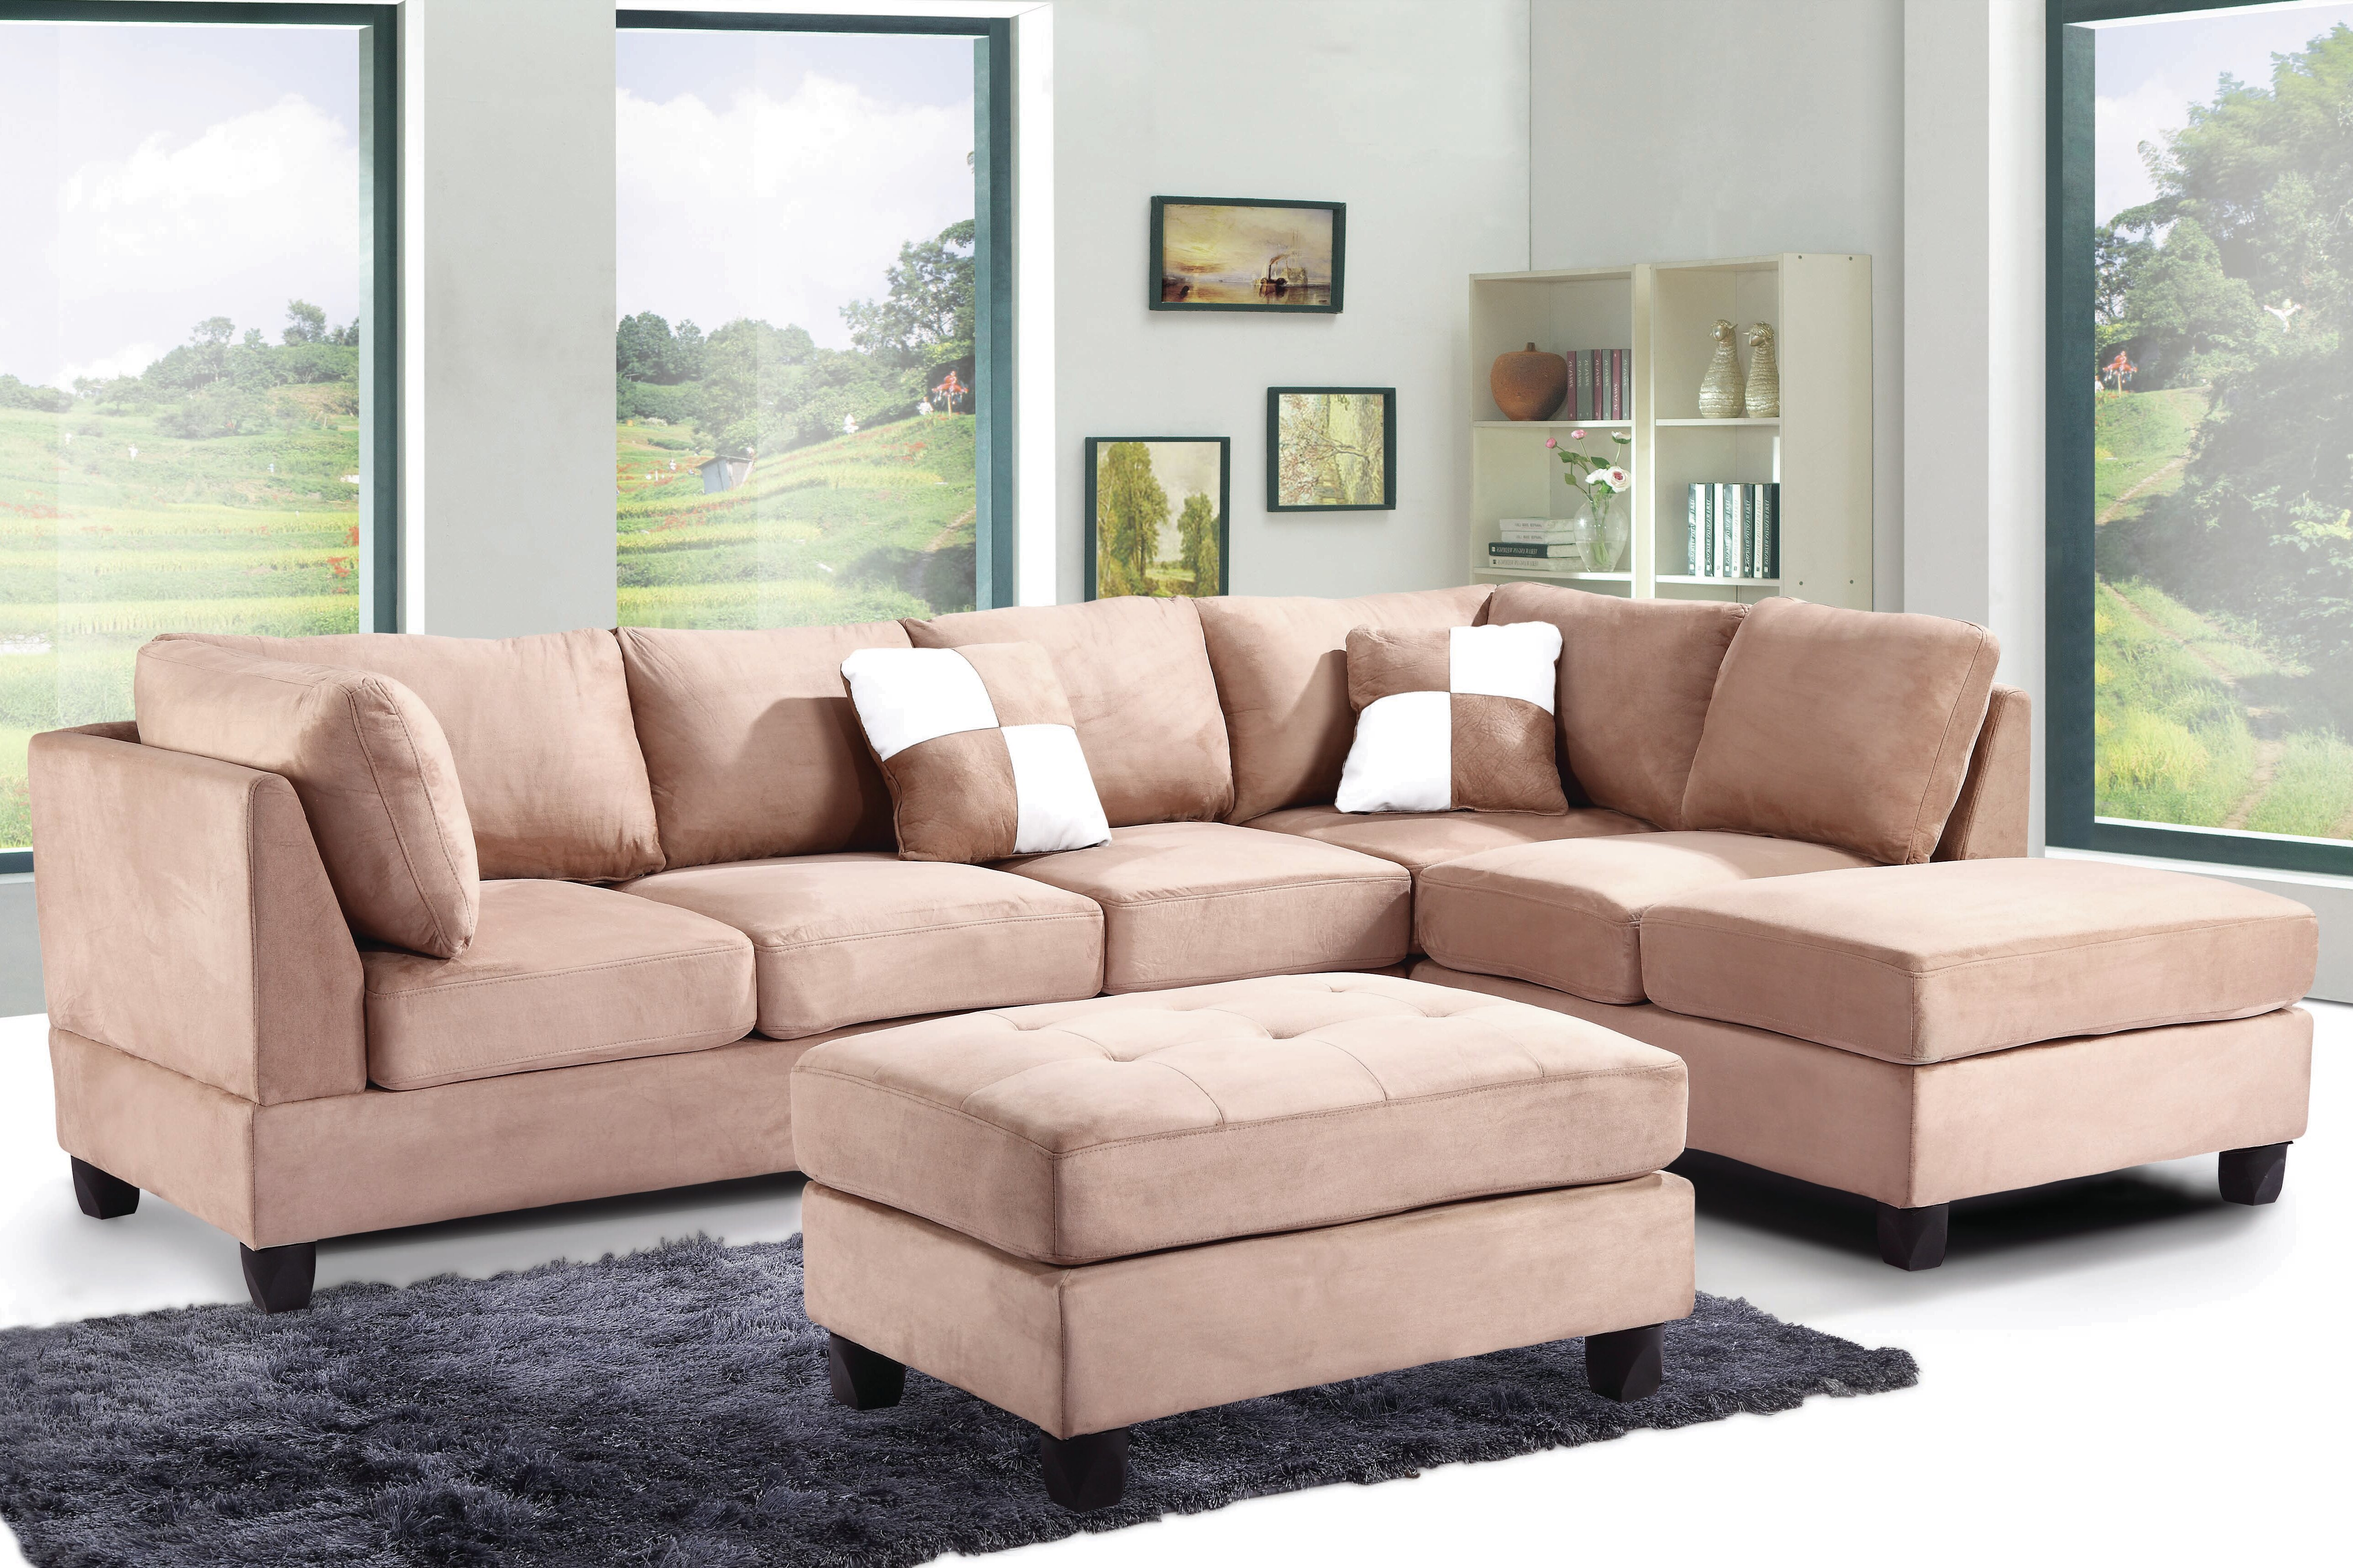 living chair italian set sofa modern sets room livingroom leather surprising clearance furniture macys rooms center sectional